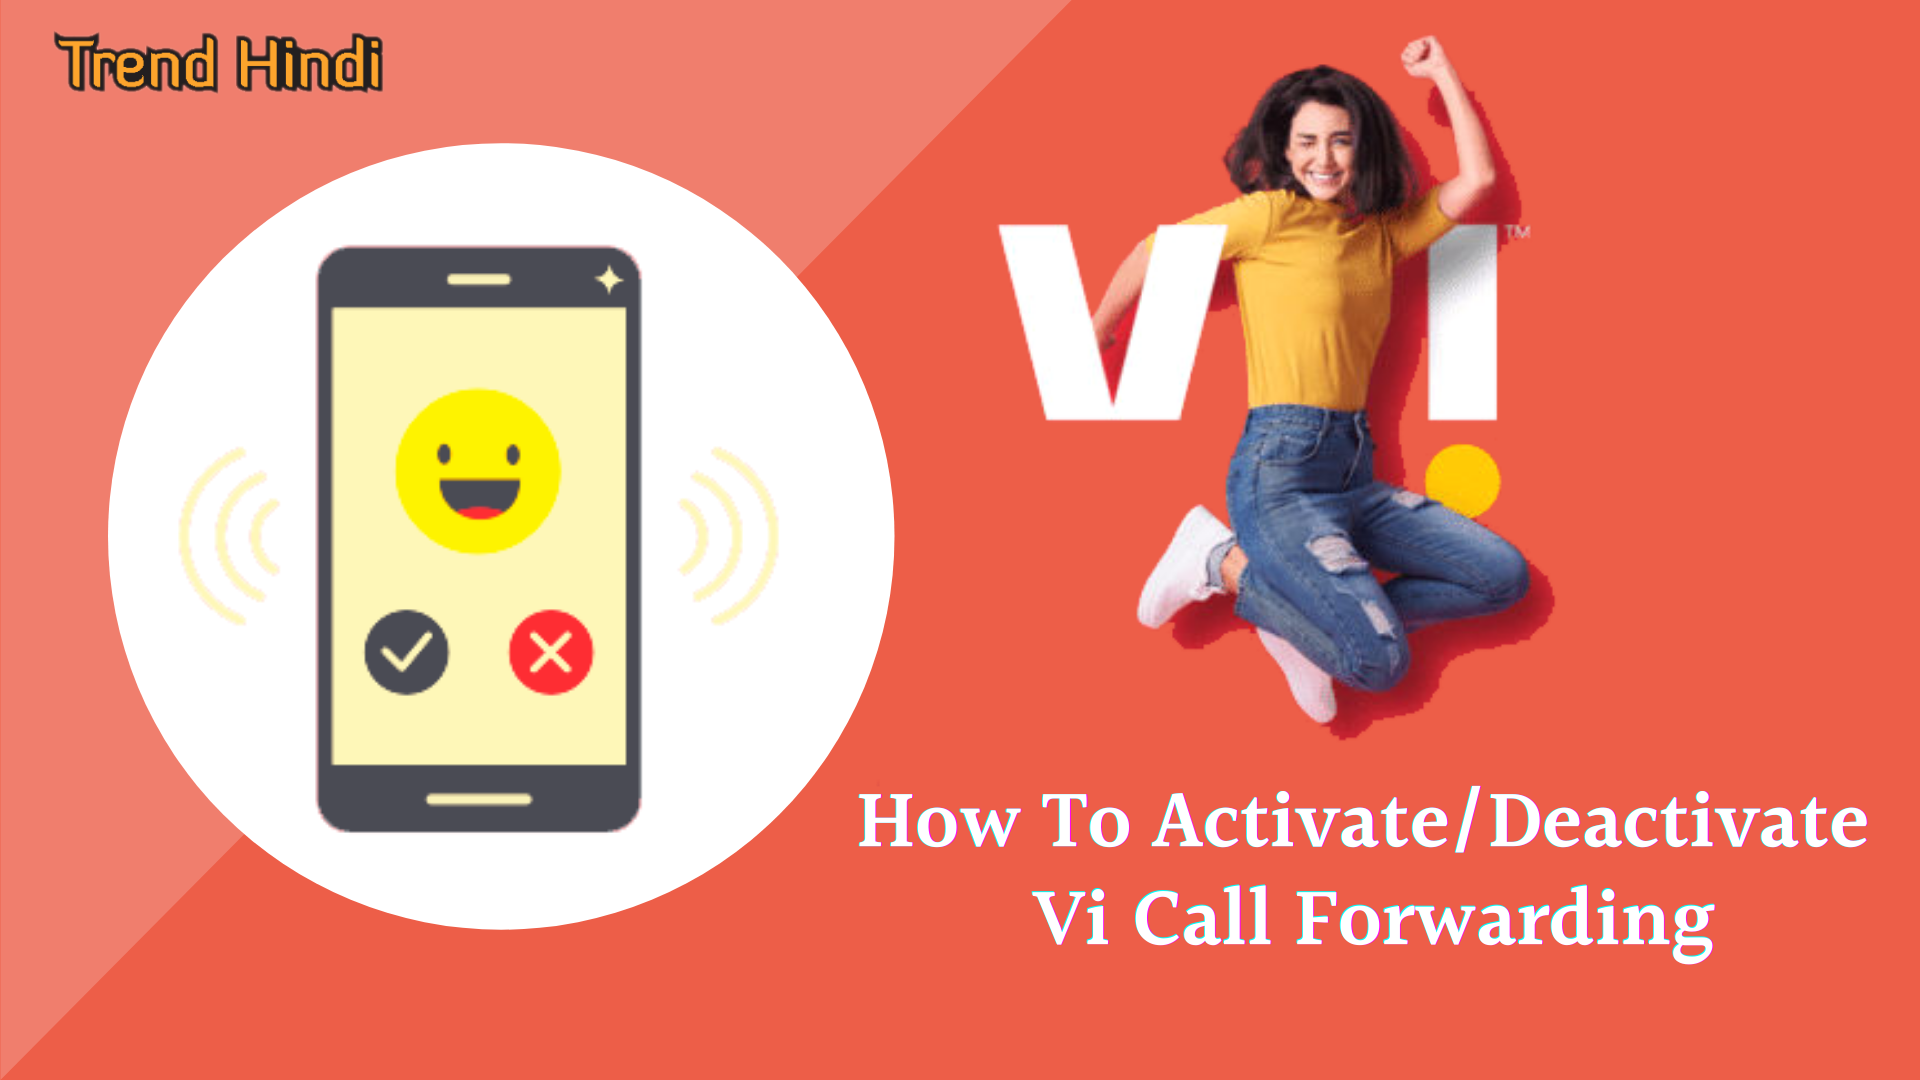 How To Activate/Deactivate Vi Call Forwarding